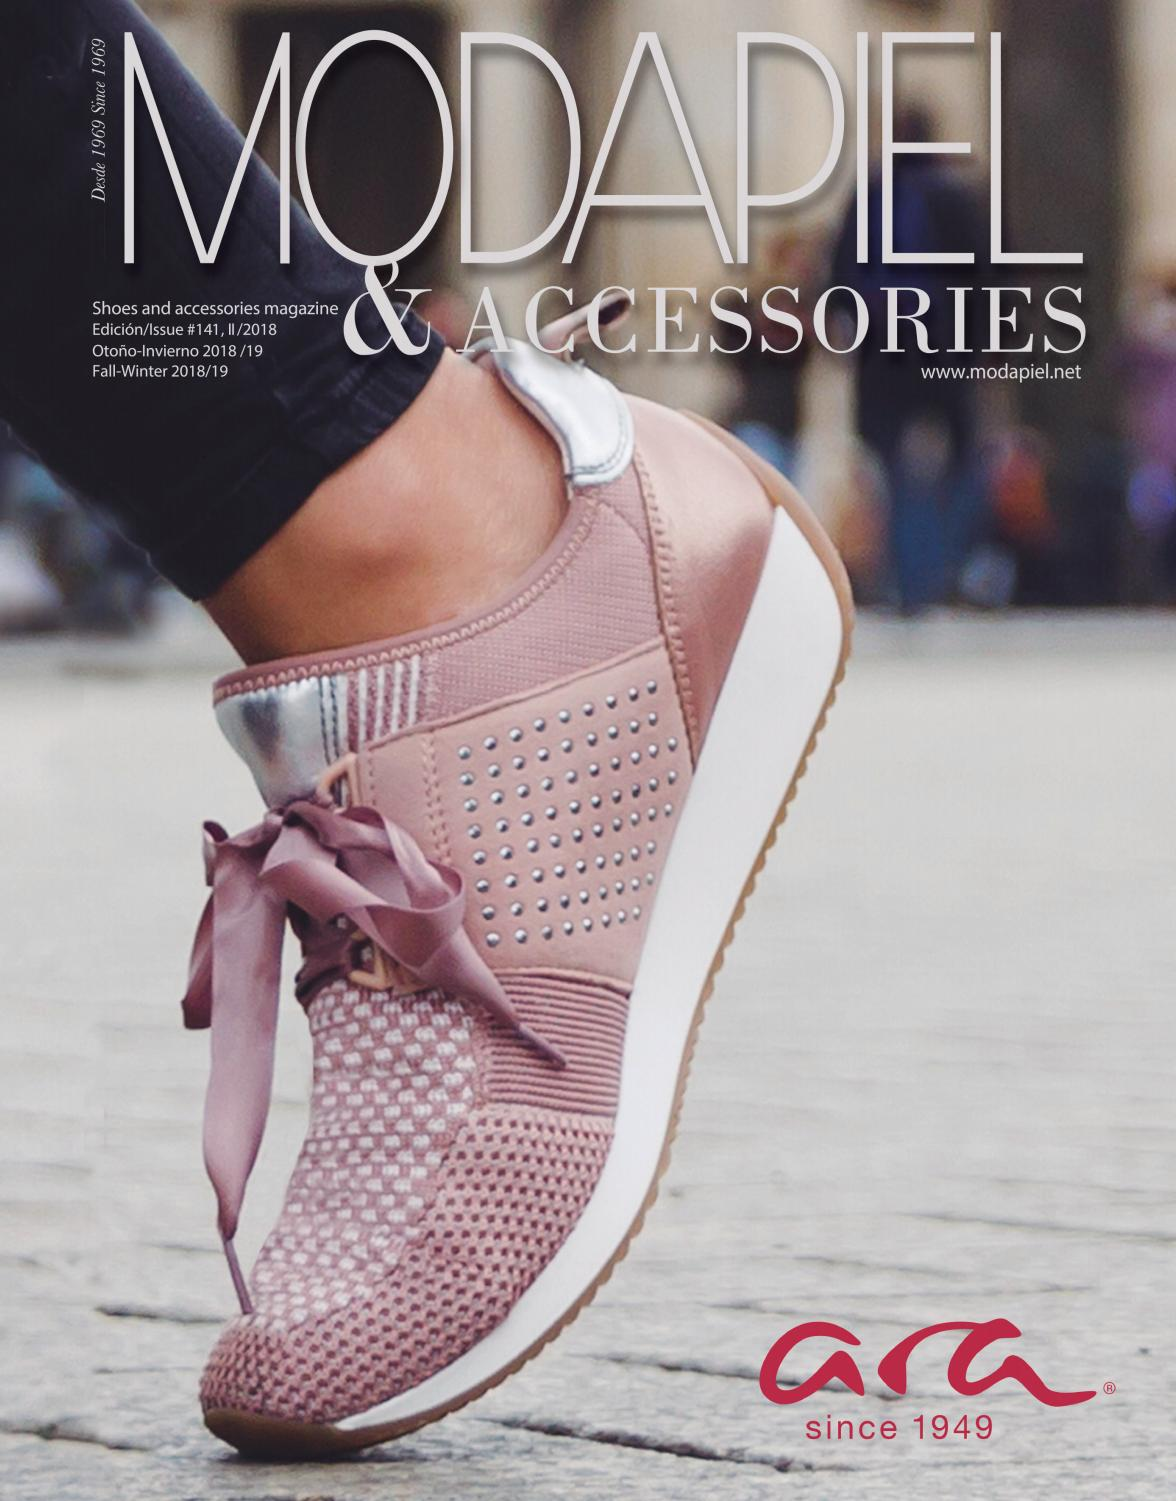 a9fc3215652 Modapiel   Accessories 141 Shoes and accessories magazine by Prensa Técnica  S.L. - issuu